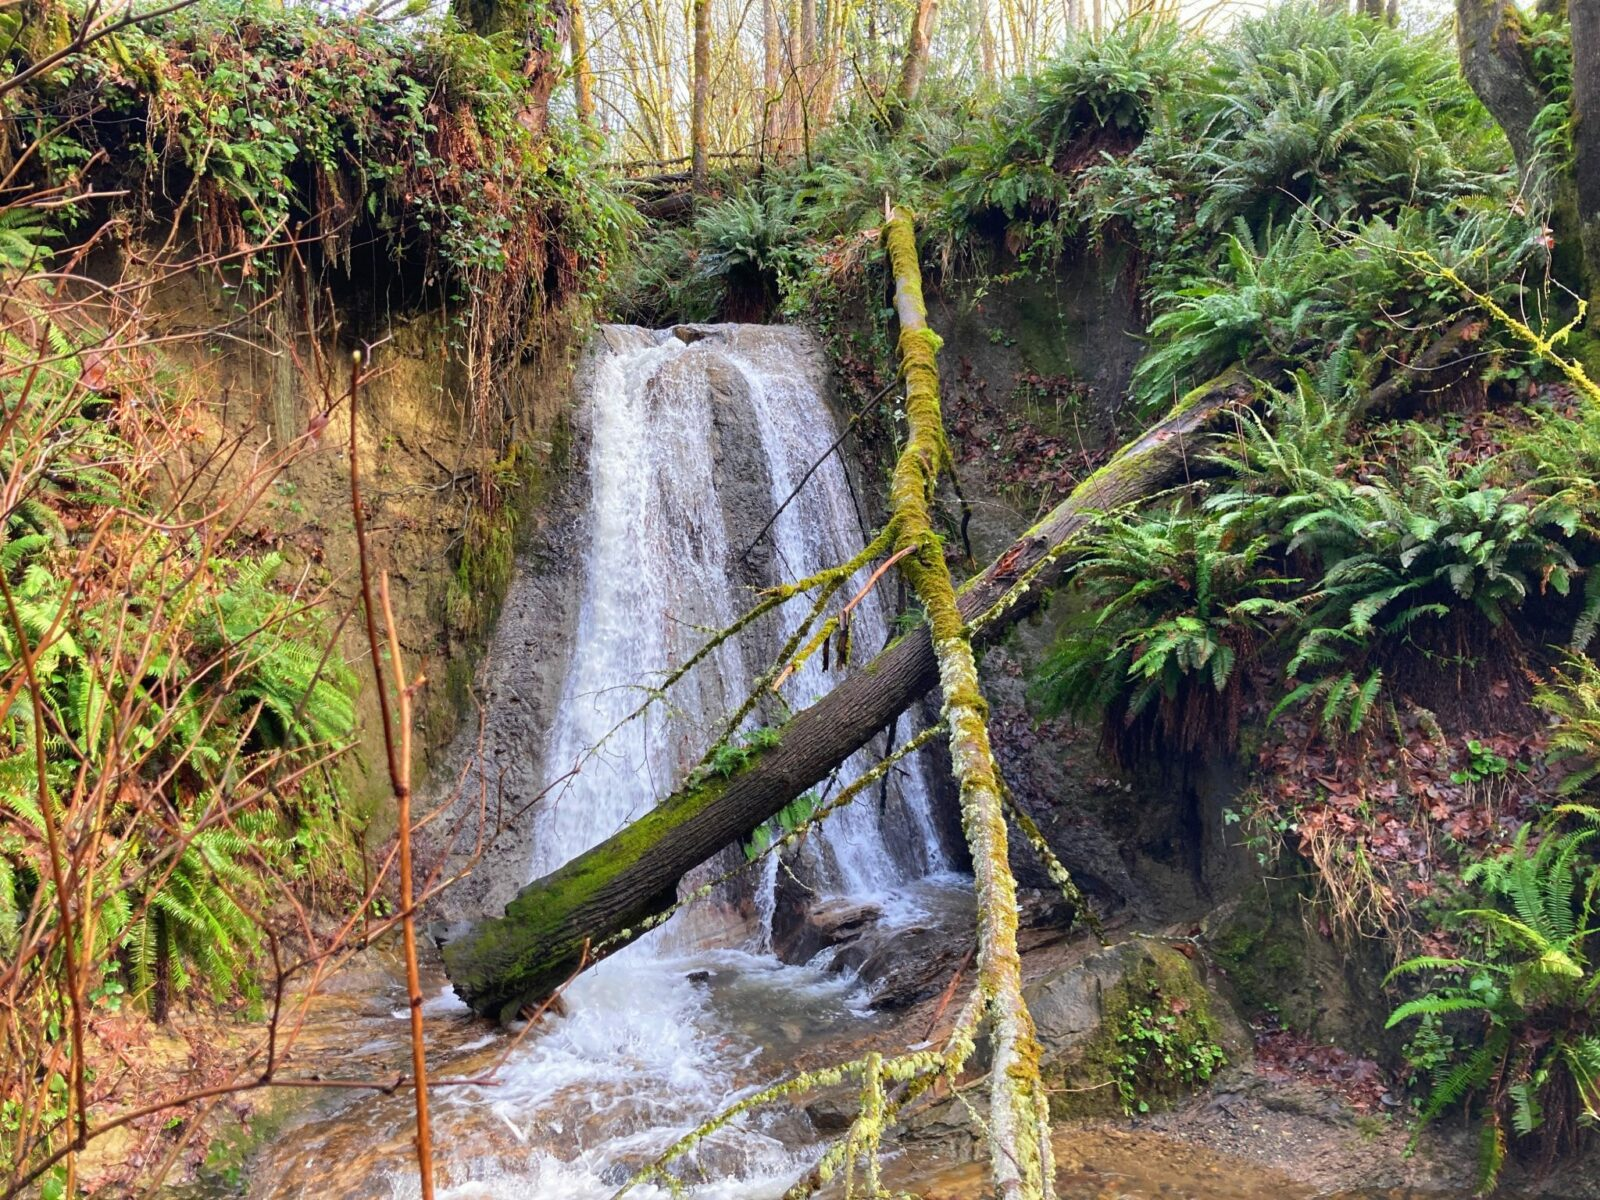 One of the wonderful hikes in Bellevue, the Coal Creek Natural Area includes this waterfall, cascading down a rock face into a small pool among green ferns